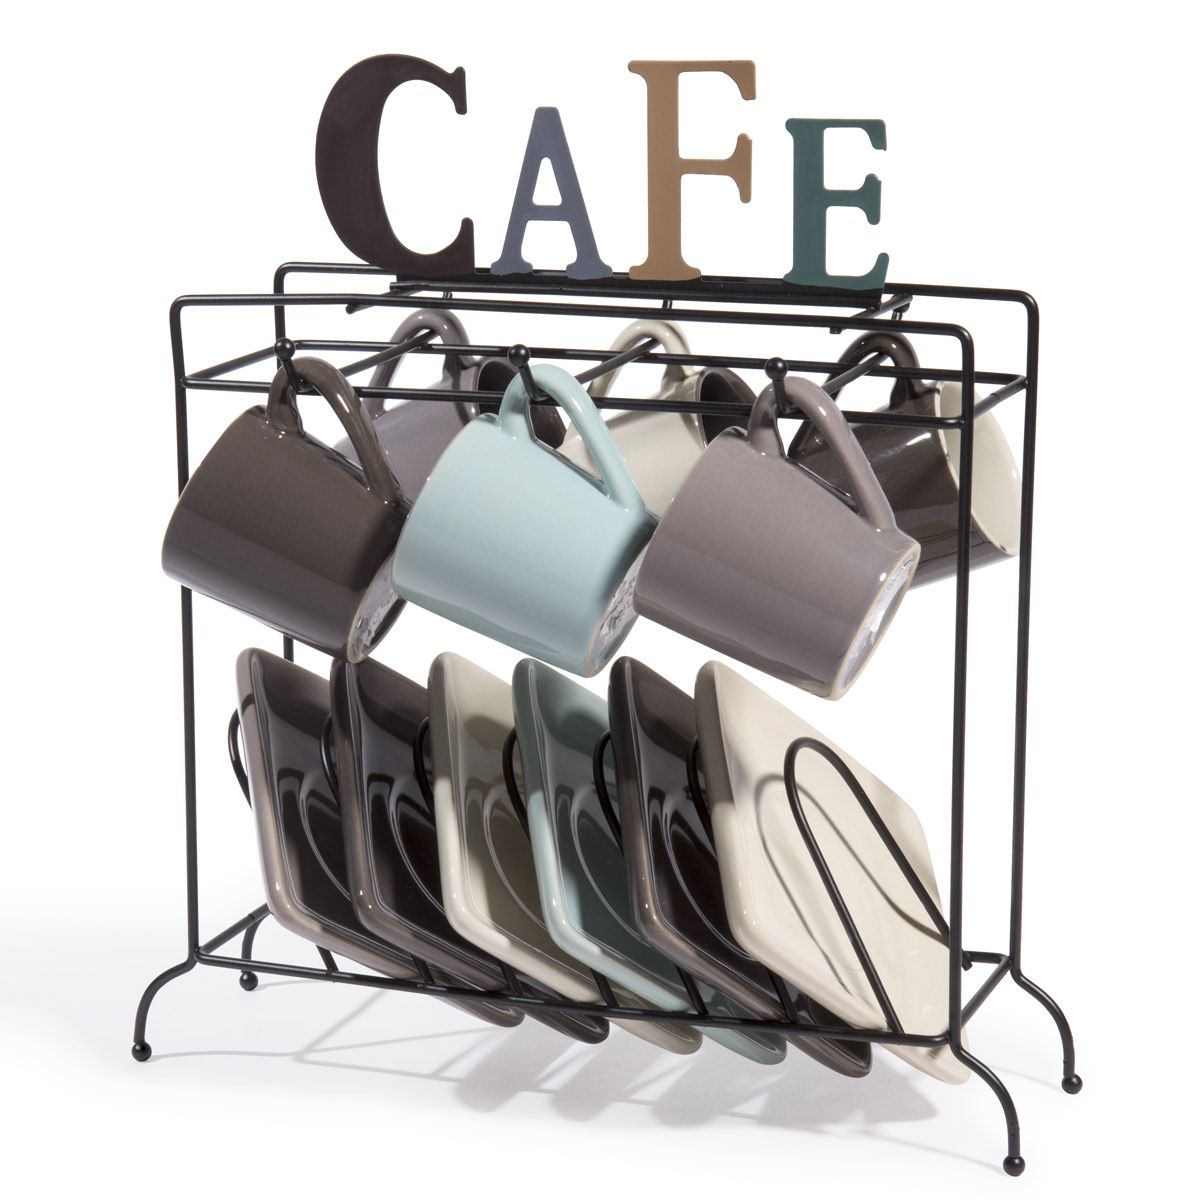 6 tasses et soucoupes support nordic caf vaisselle en. Black Bedroom Furniture Sets. Home Design Ideas